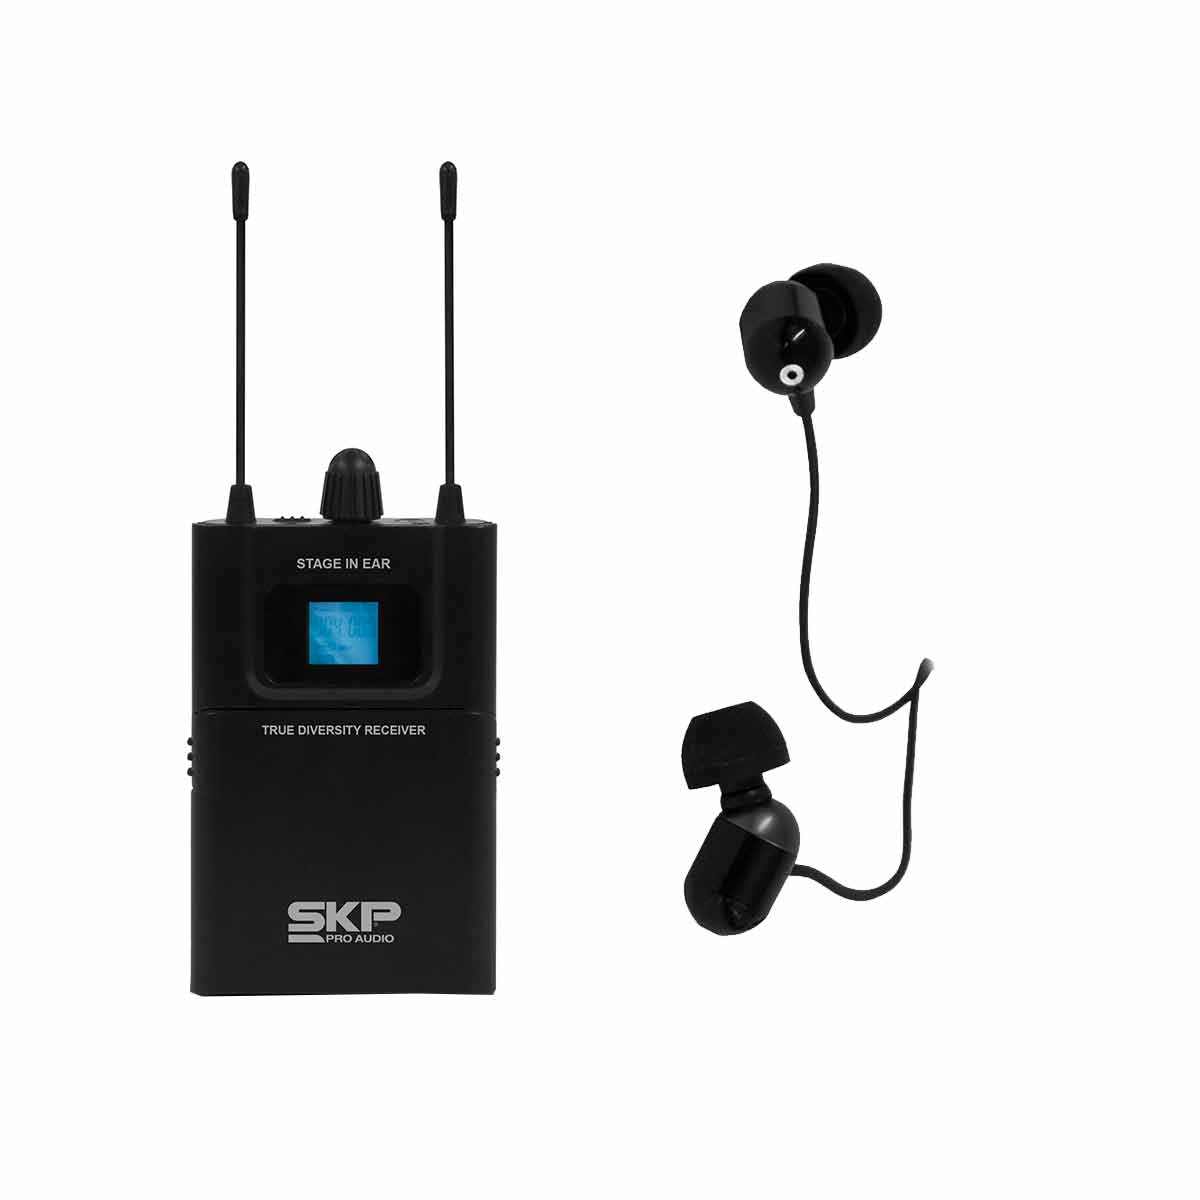 STAGEINEAR Ponto Eletr�nico s/ Fio c/ Fone In-ear STAGE IN EAR - SKP